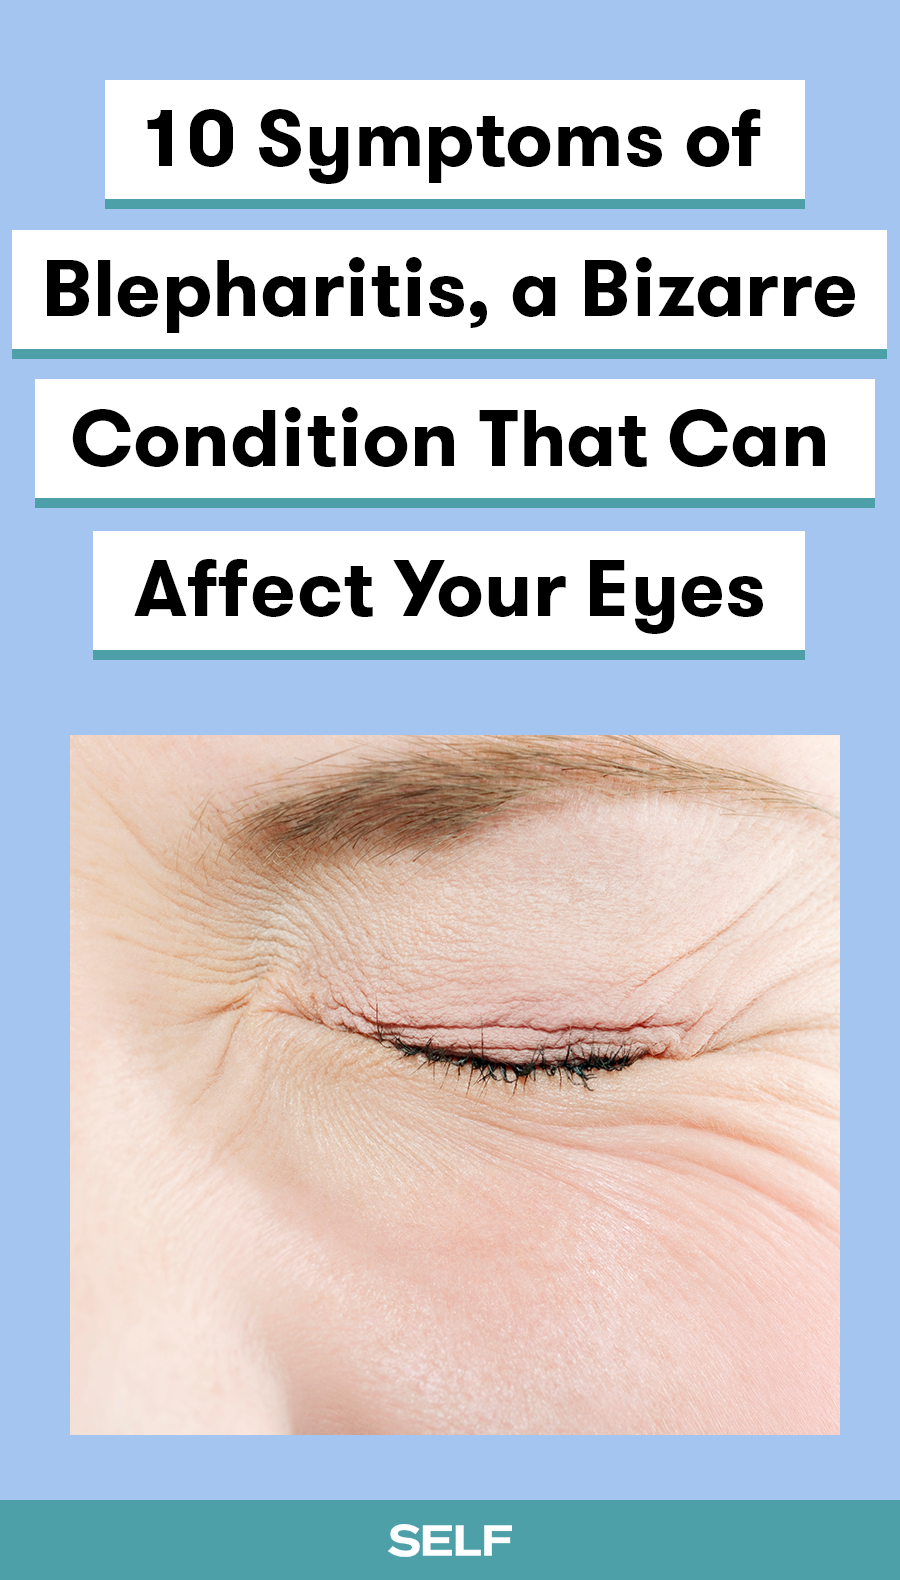 10 Symptoms Of Blepharitis A Bizarre Condition That Can Affect Your Eyes Blepharitis Allergy Eyes Blepharitis Treatment